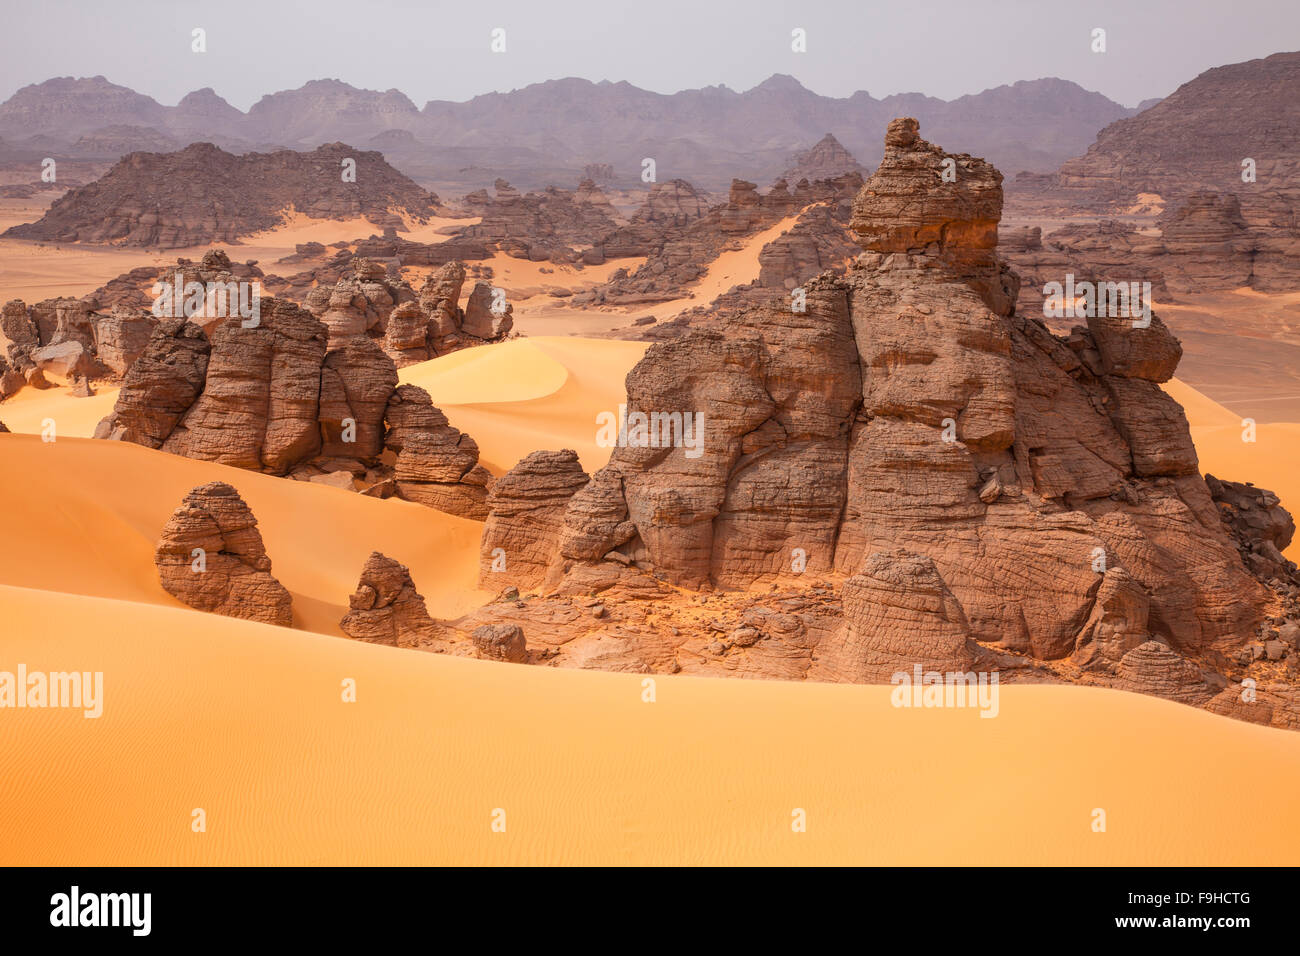 Sandstone and dunes, Jebel Acacus, LIbya, Mountains in Sahara Desert UNESCO World Heritage Site, The Awiss - Stock Image